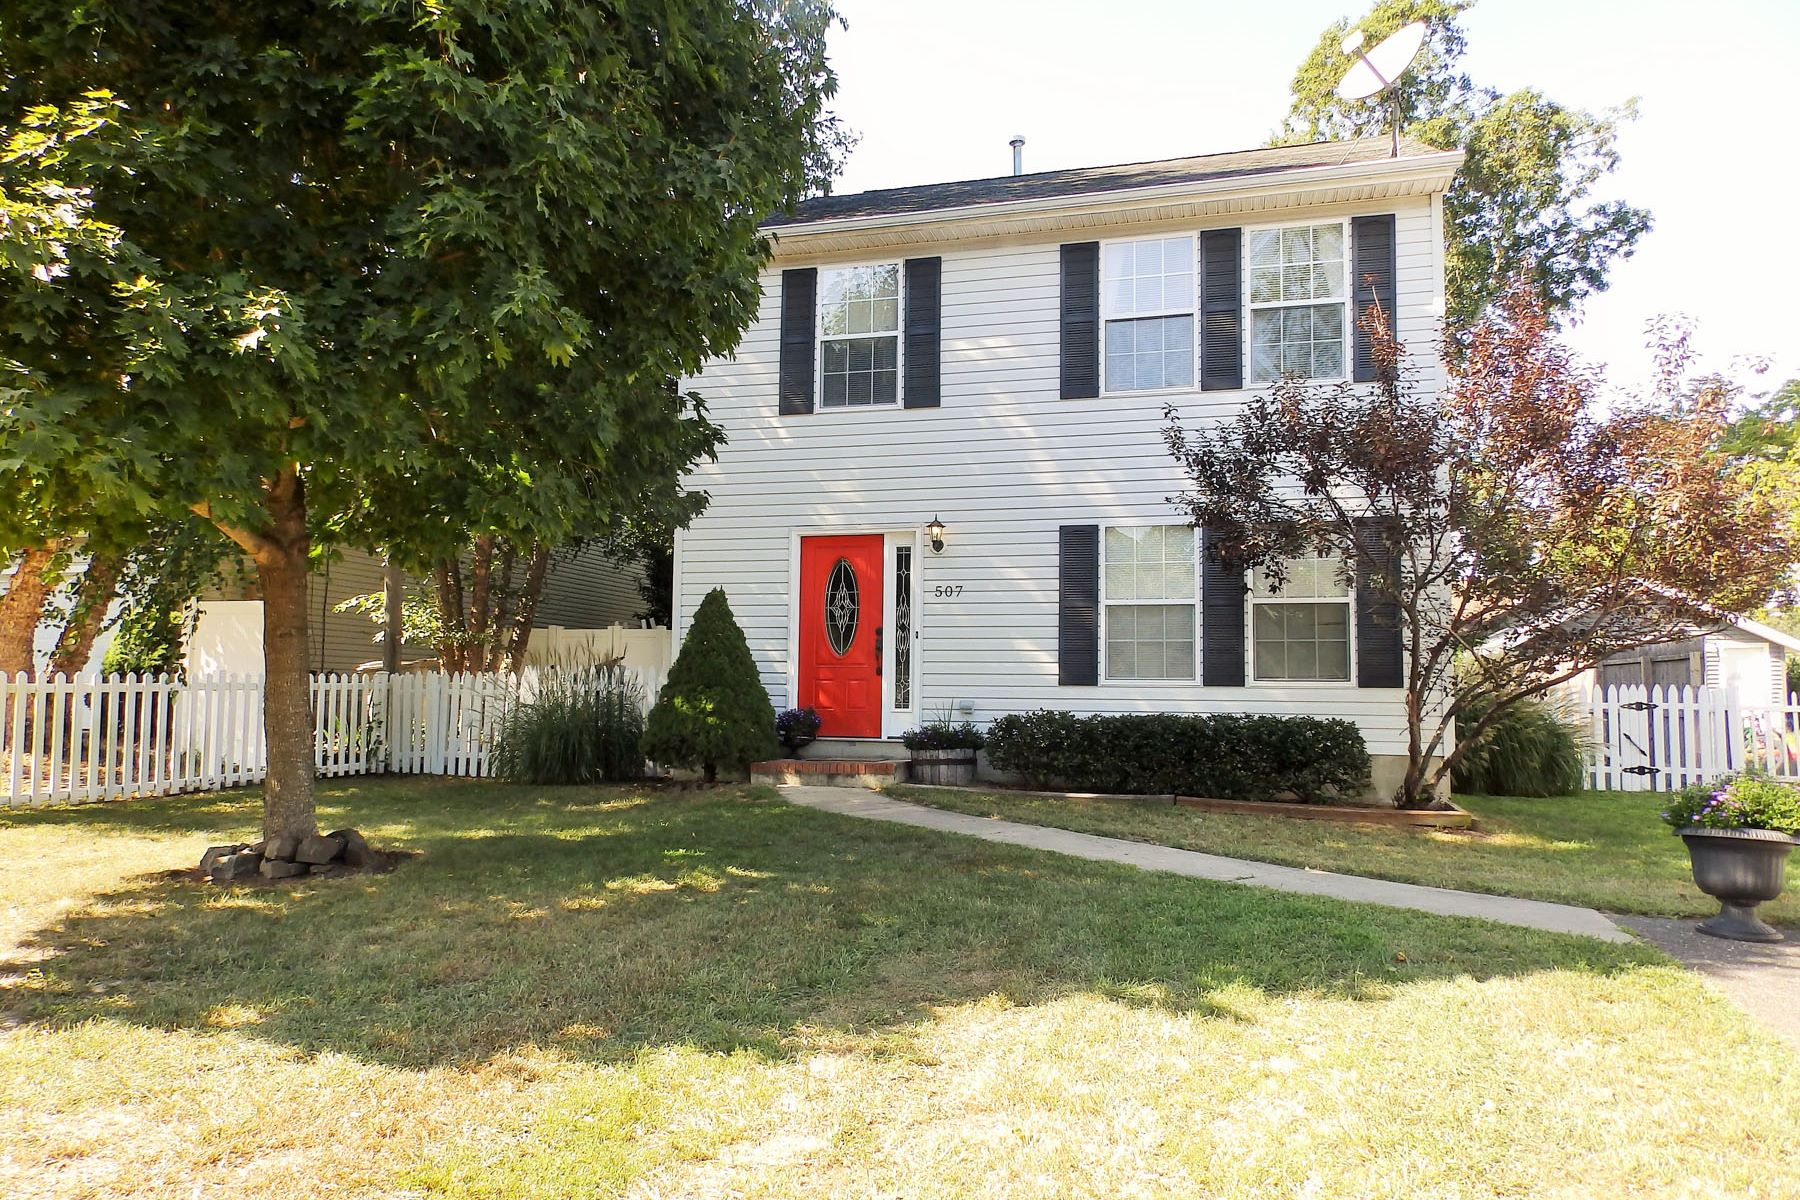 Single Family Homes for Sale at Meticulous Smart Home Equipped Colonial Style Home 507 Bay Boulevard Bayville, New Jersey 08721 United States